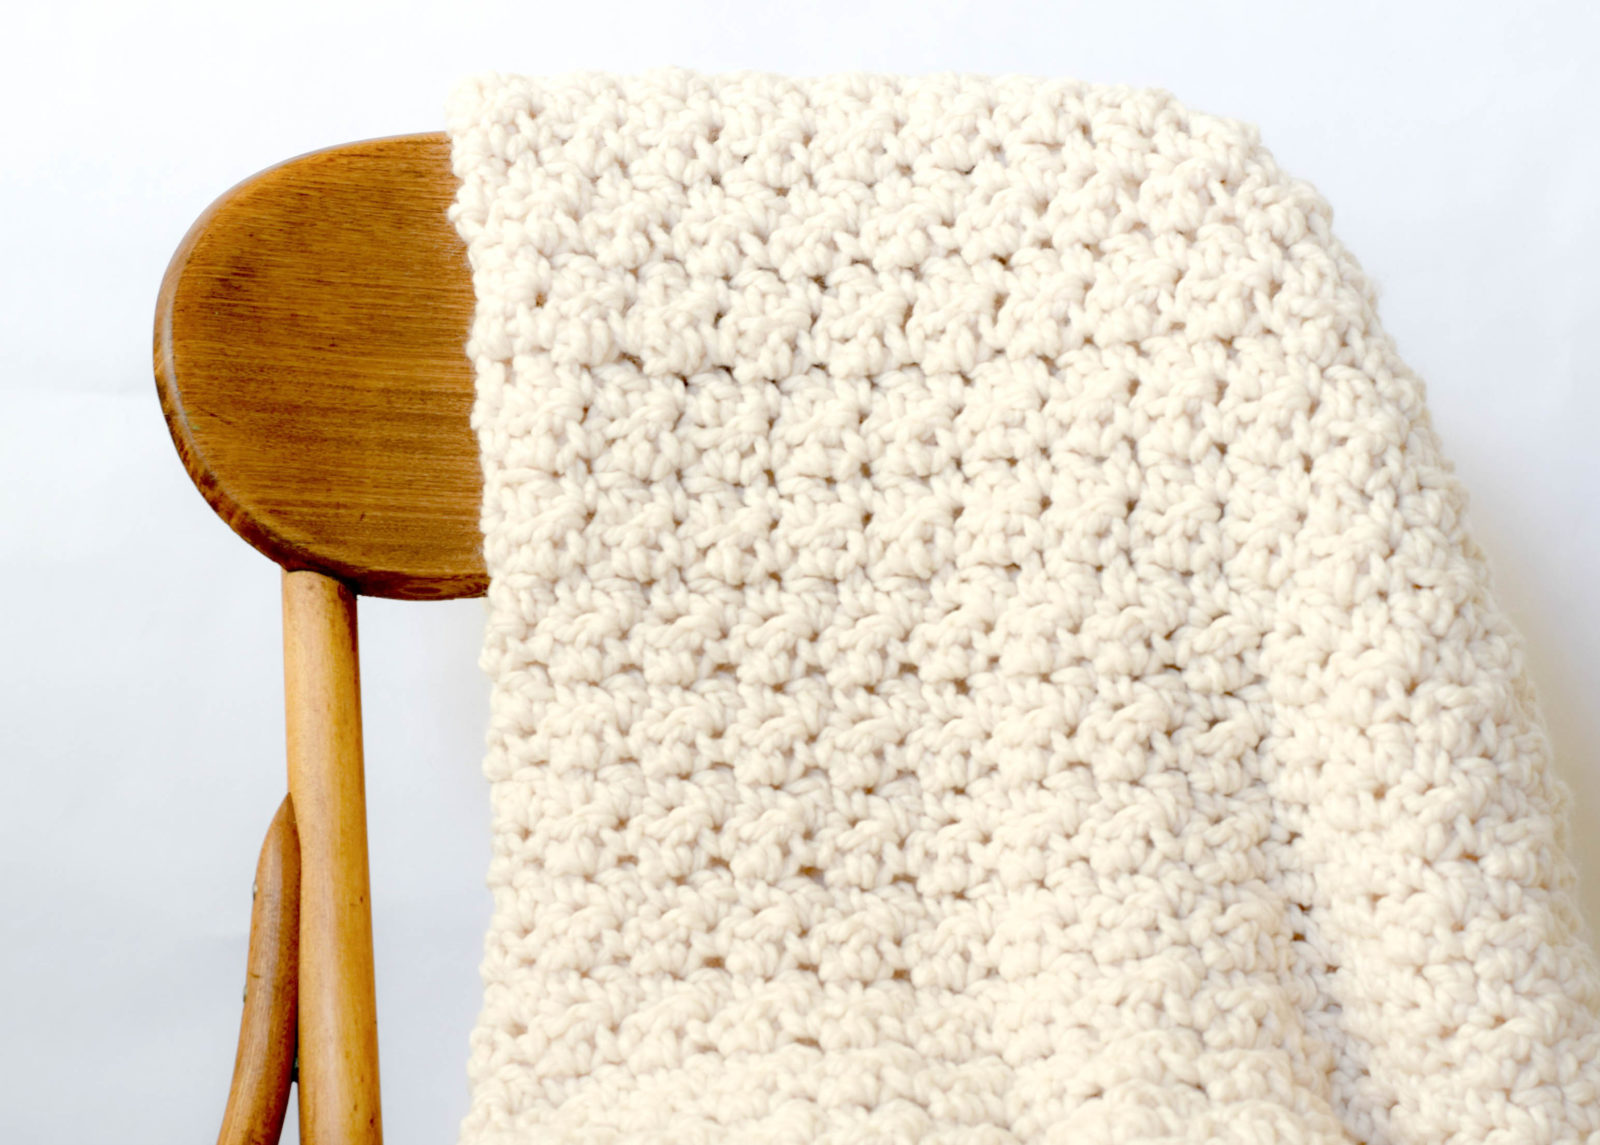 Crochet Patterns Chunky Yarn : Chunky Icelandic Crochet Blanket Pattern - Mama In A Stitch